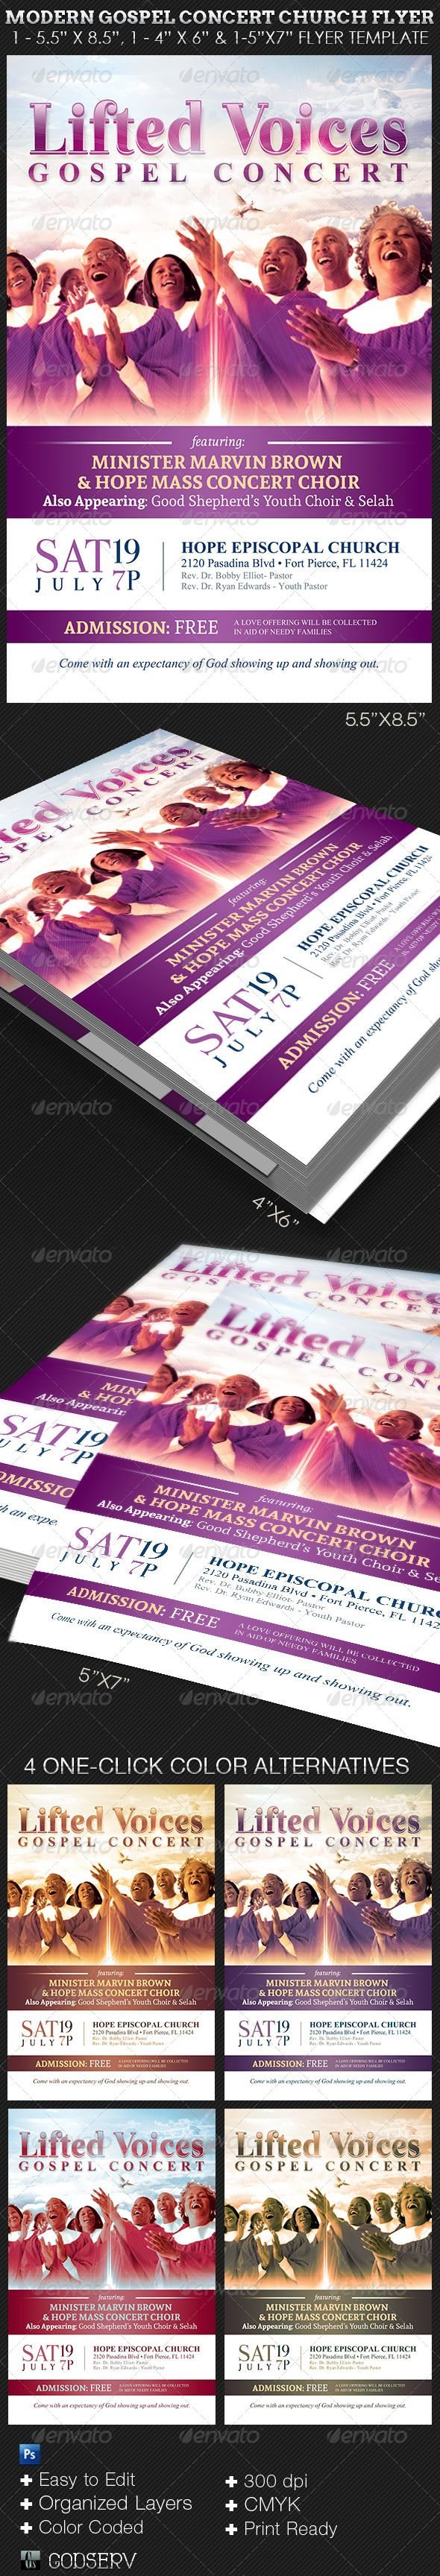 Modern Gospel Concert Church Flyer Template — Photoshop PSD #template #release • Available here → https://graphicriver.net/item/modern-gospel-concert-church-flyer-template-/7966624?ref=pxcr